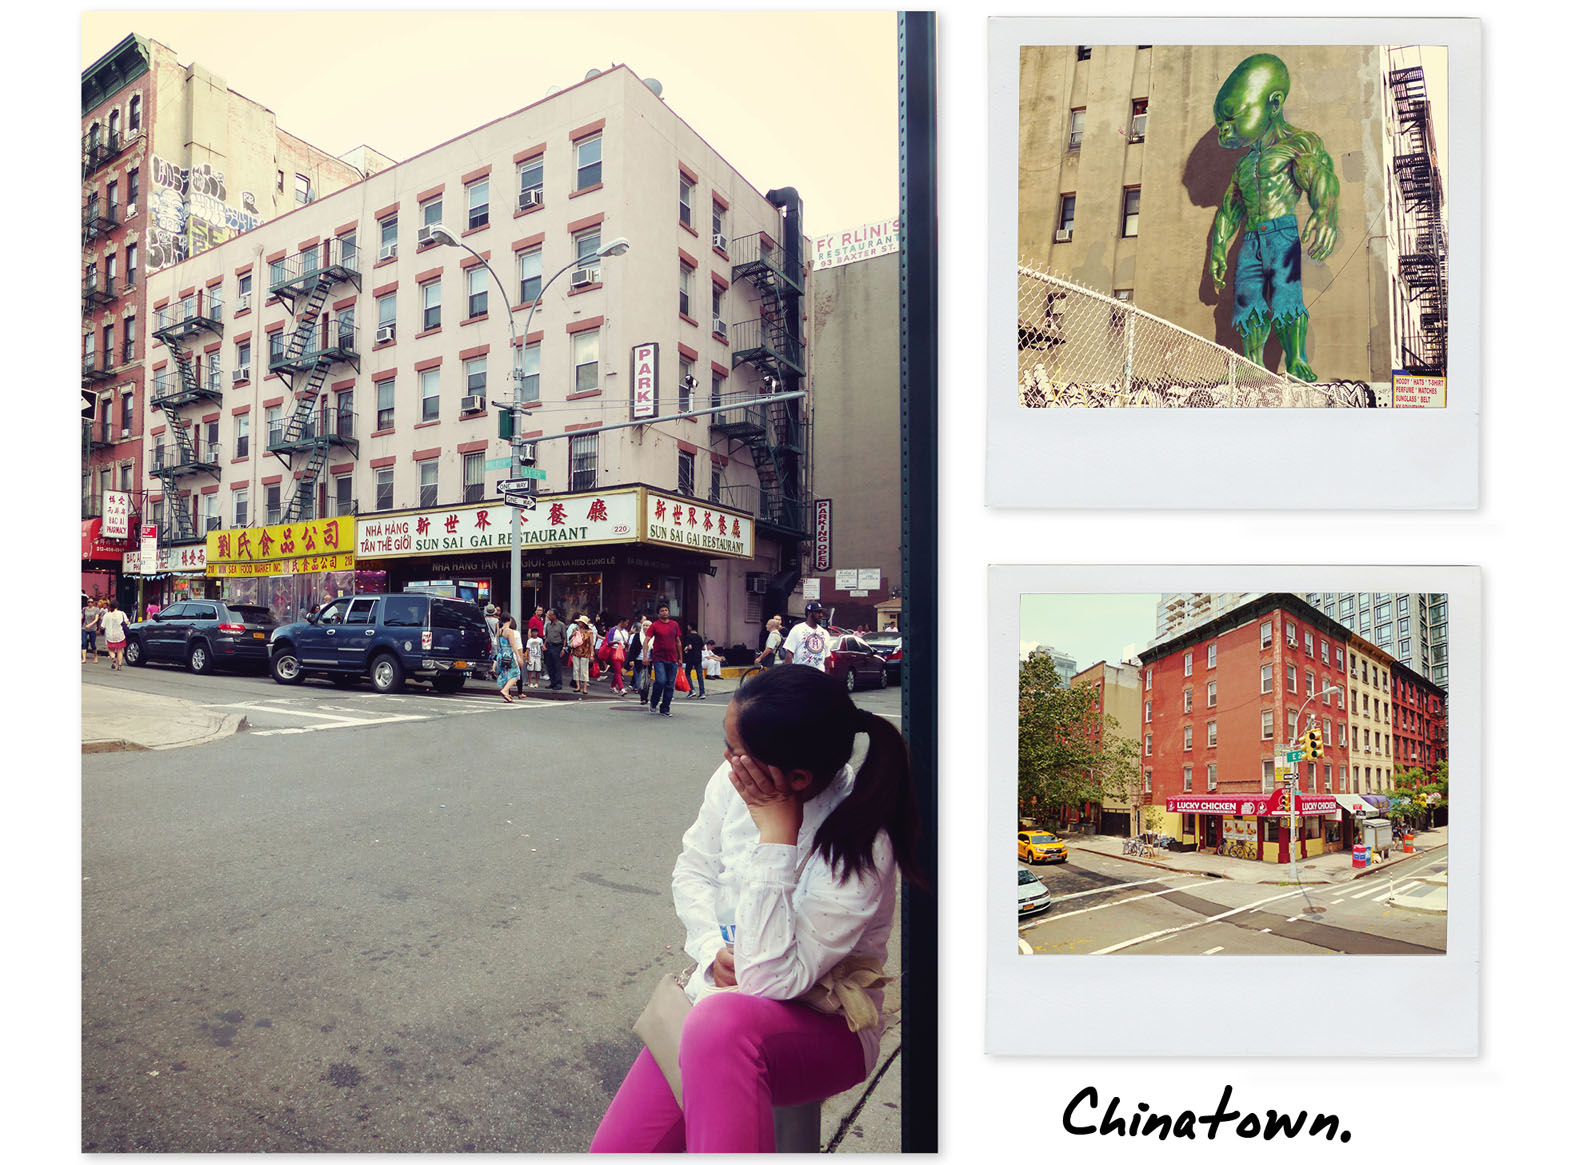 usa, New York, nyc, chinatown, voyage, road trip